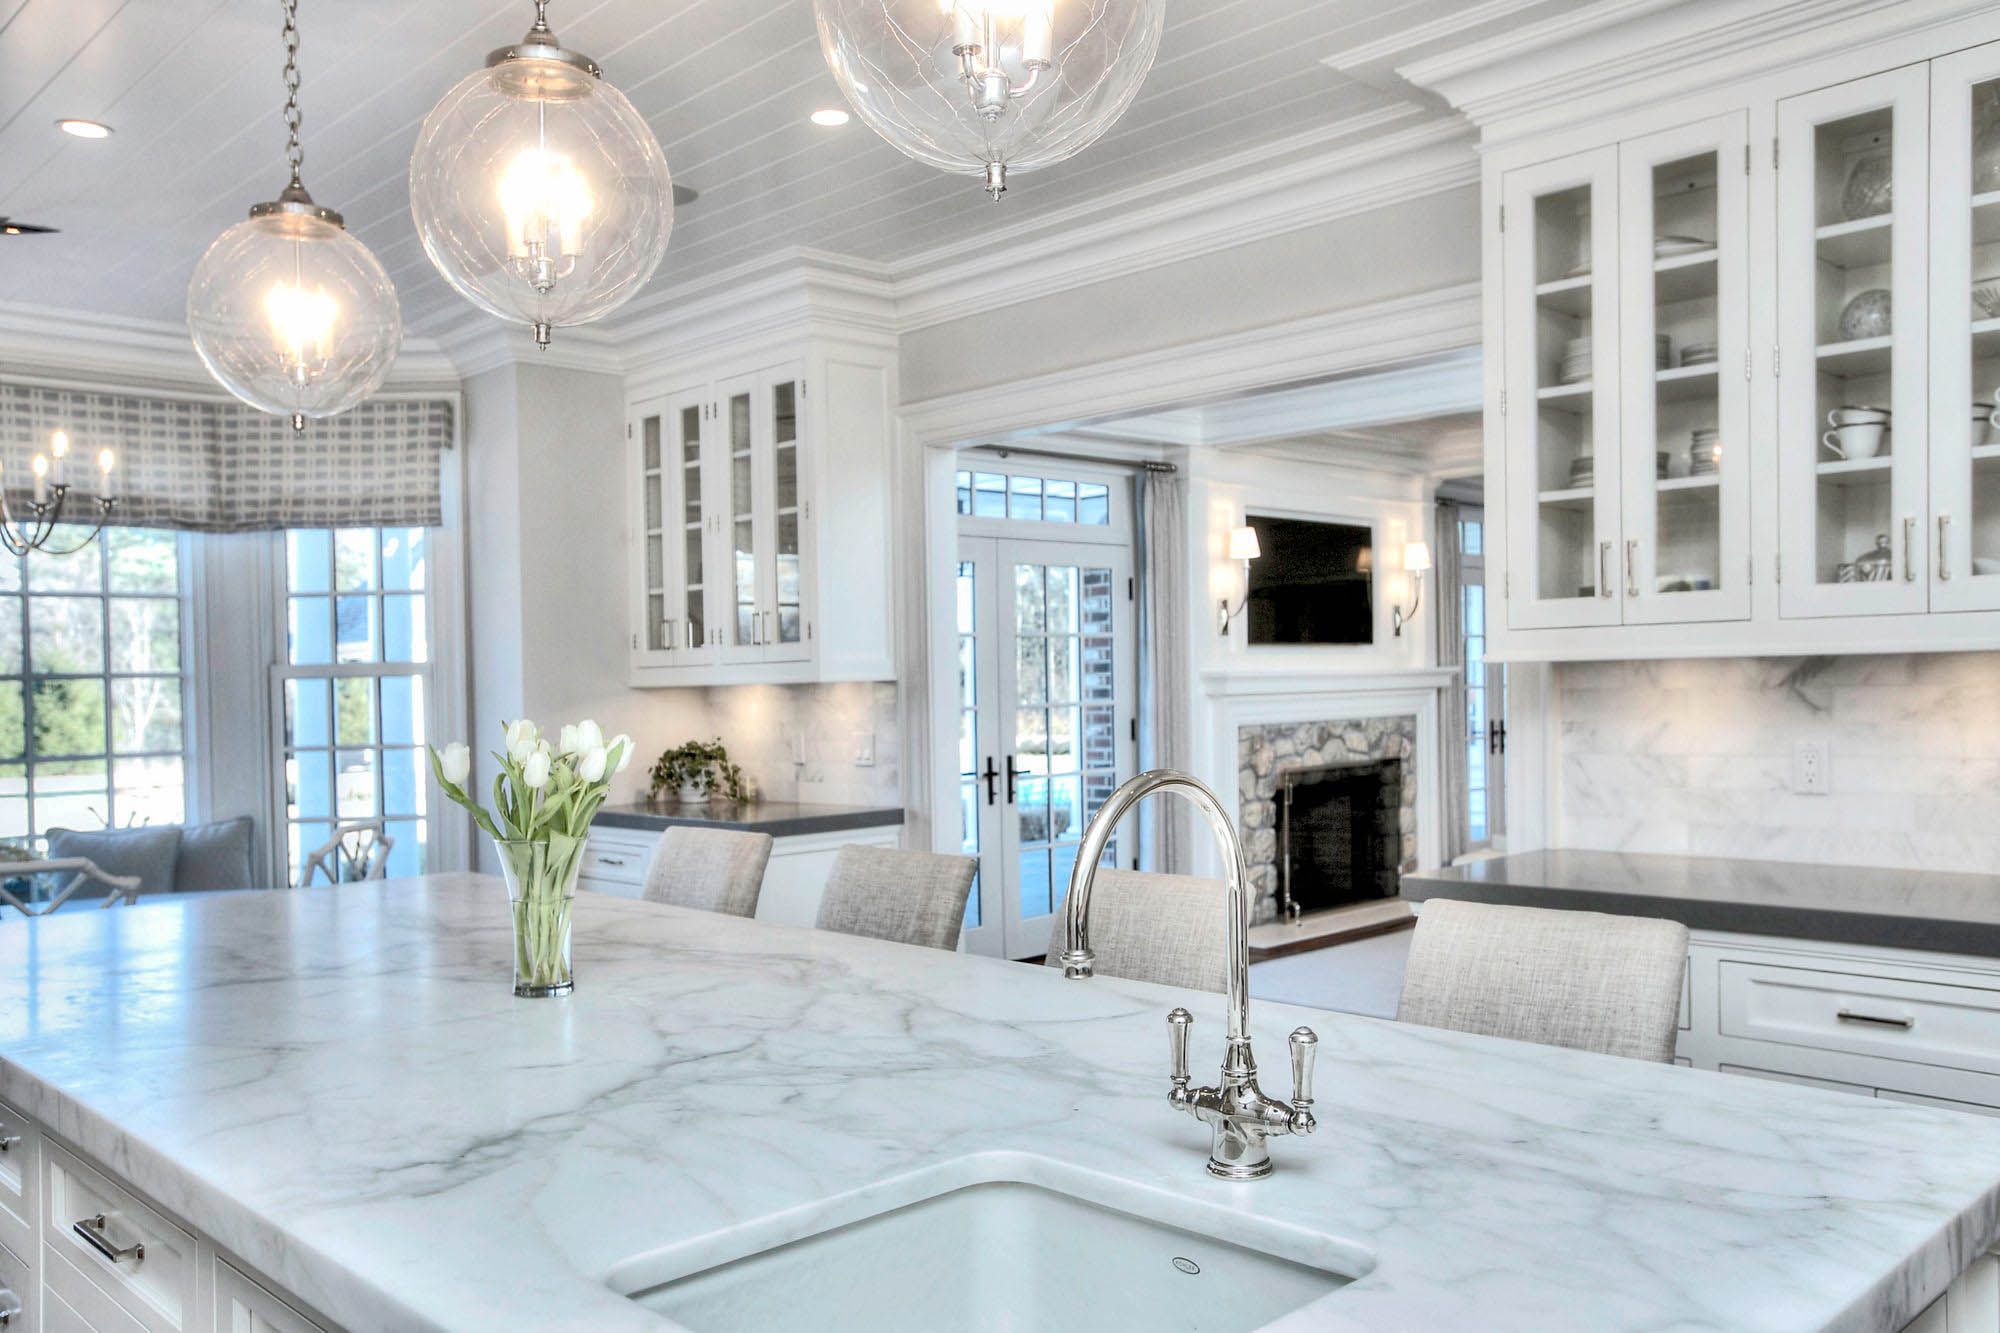 Quartz countertops designed to look just like real marble.